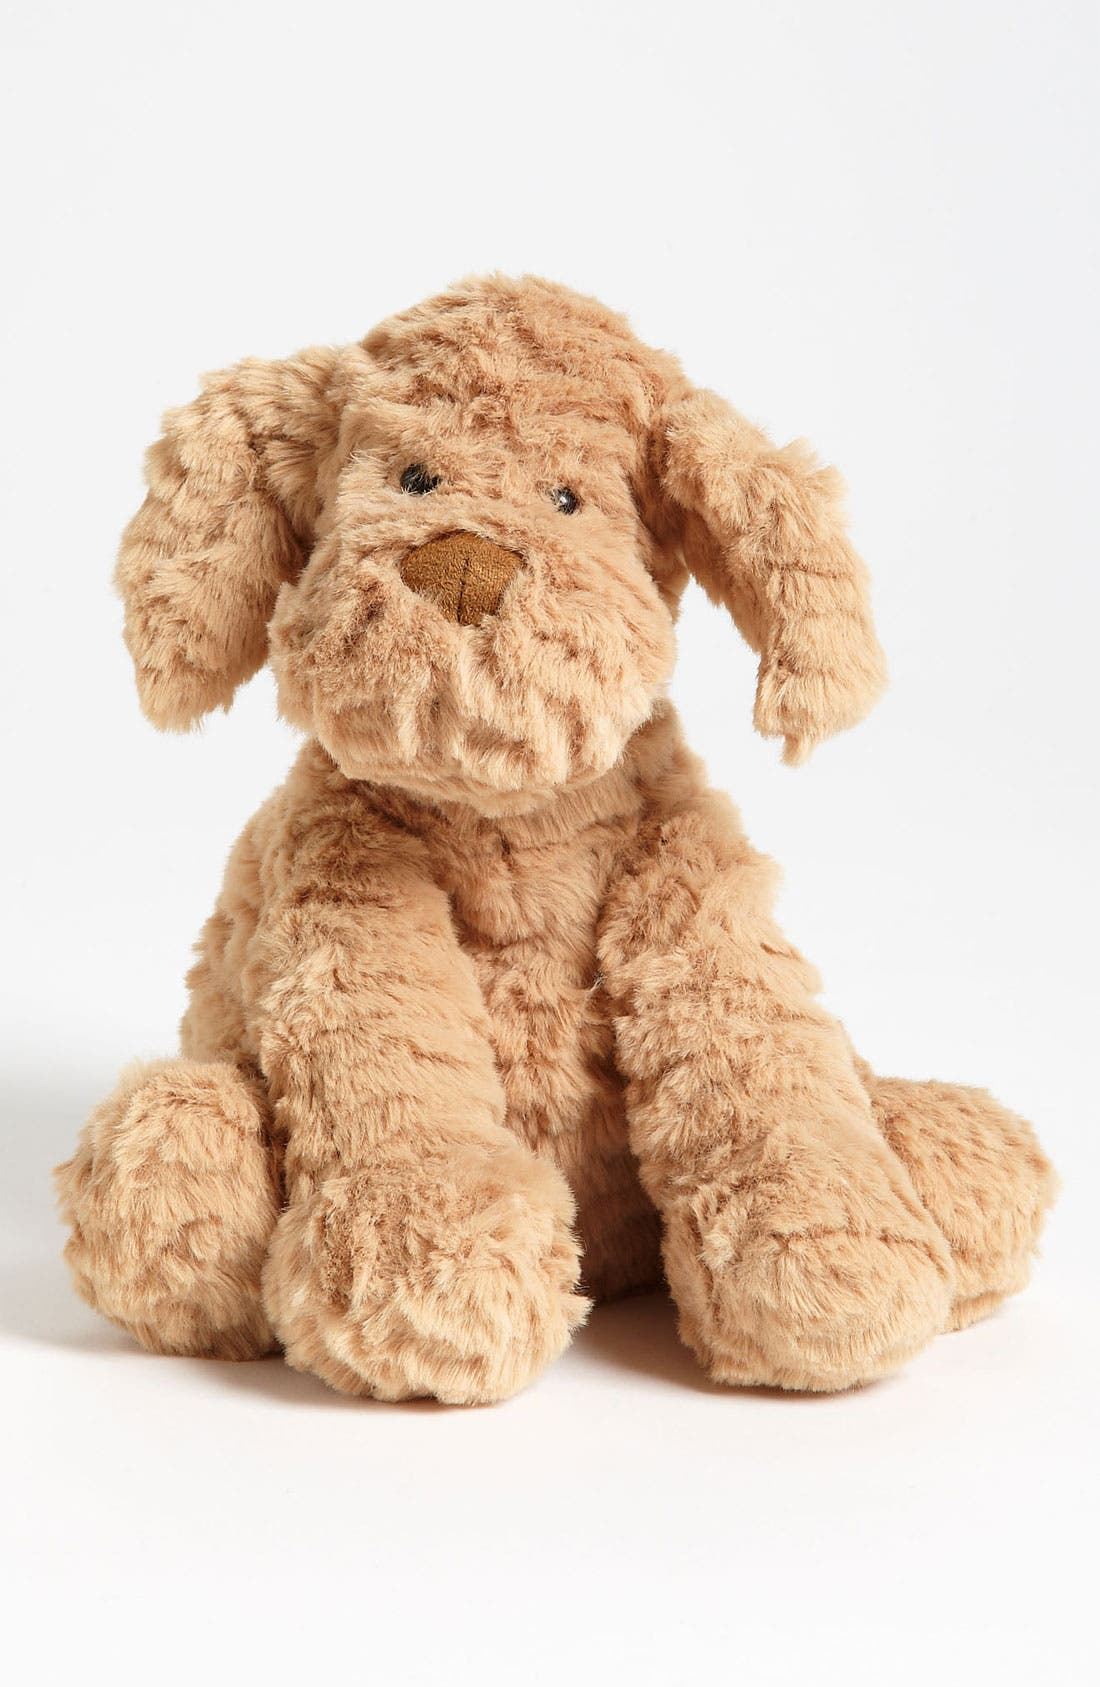 Main Image - Jellycat 'Fuddlewuddle Puppy' Stuffed Animal